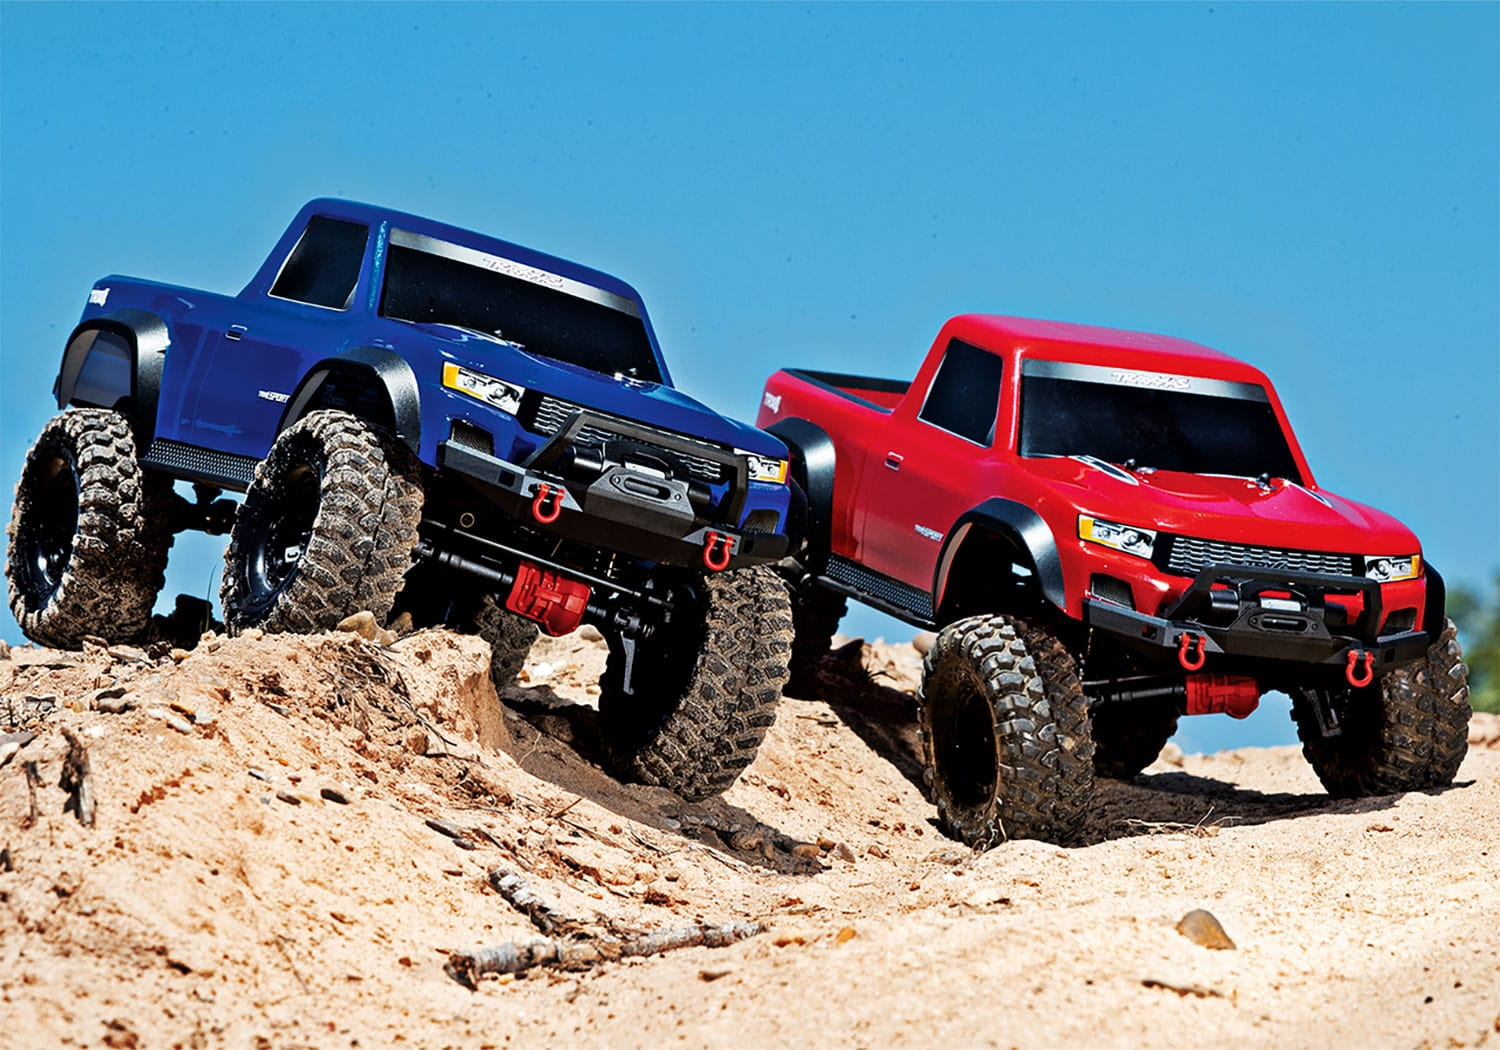 Traxxas TRX-4 Sport: No Frills, All Fun